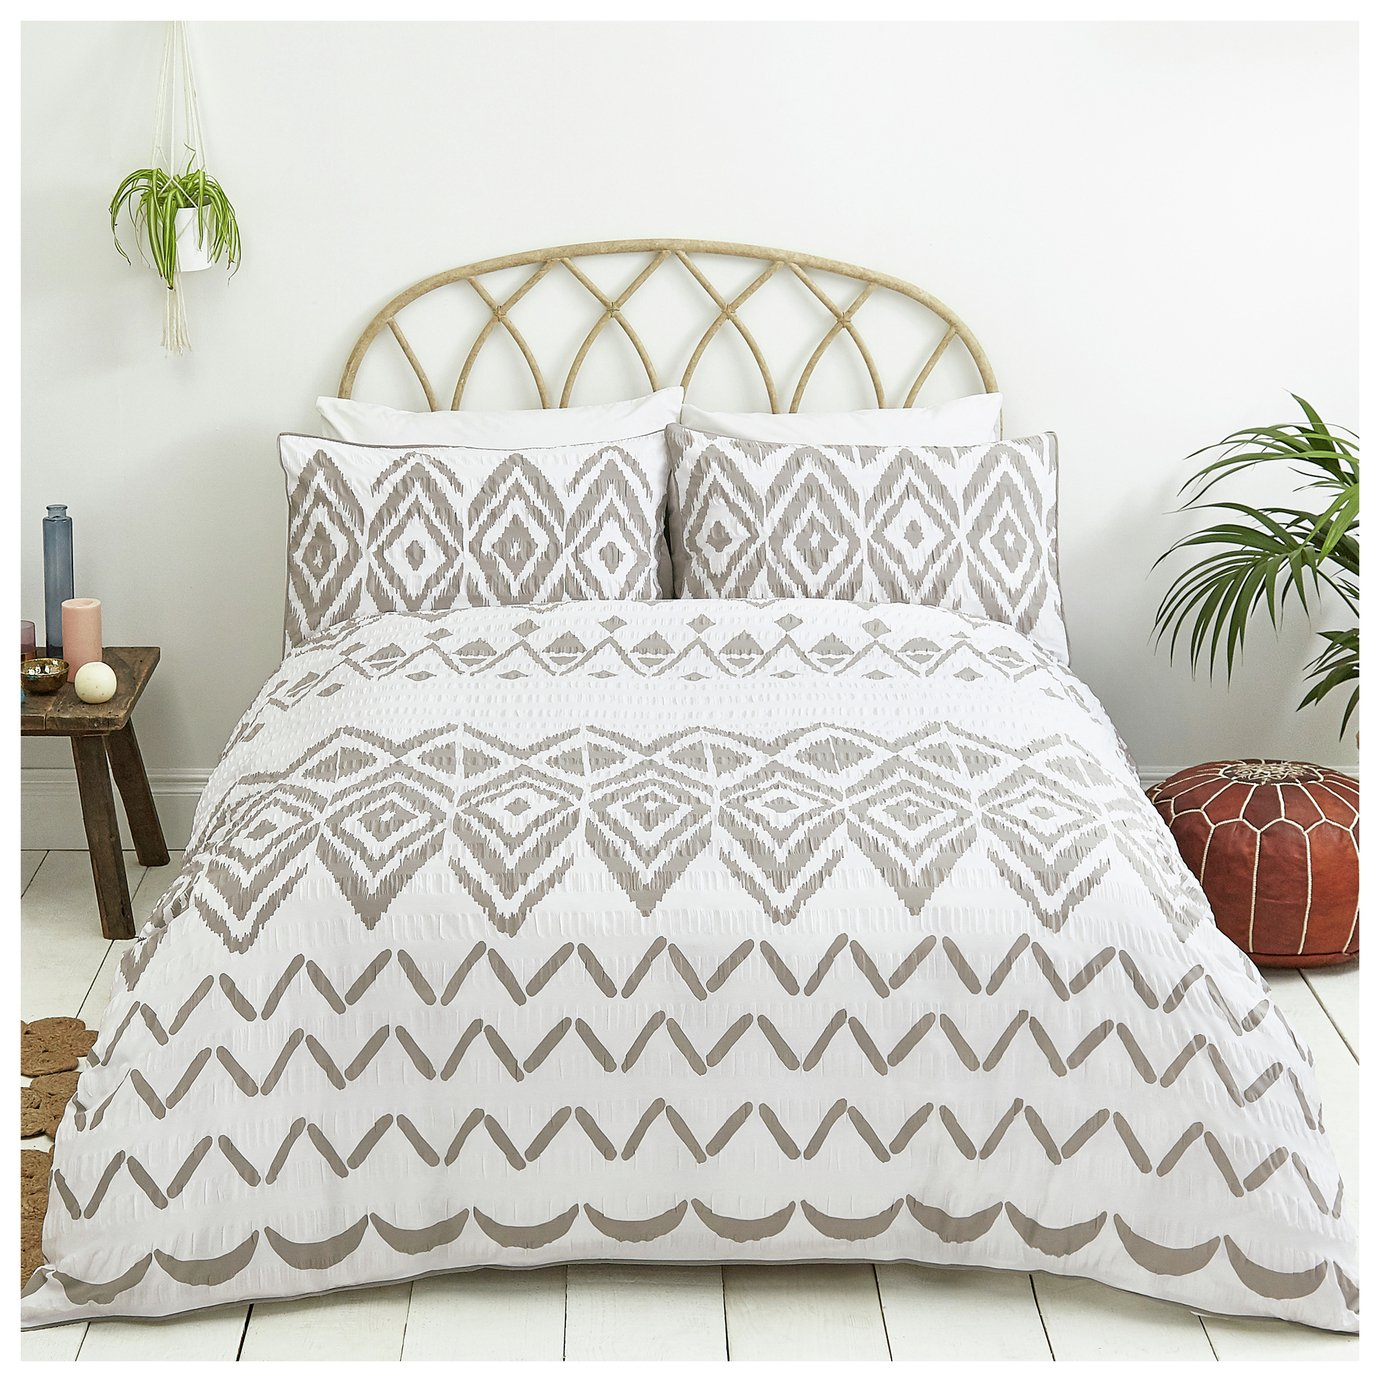 Sainsbury's Home Boho Grey Seersucker Bedding Set - Kingsize